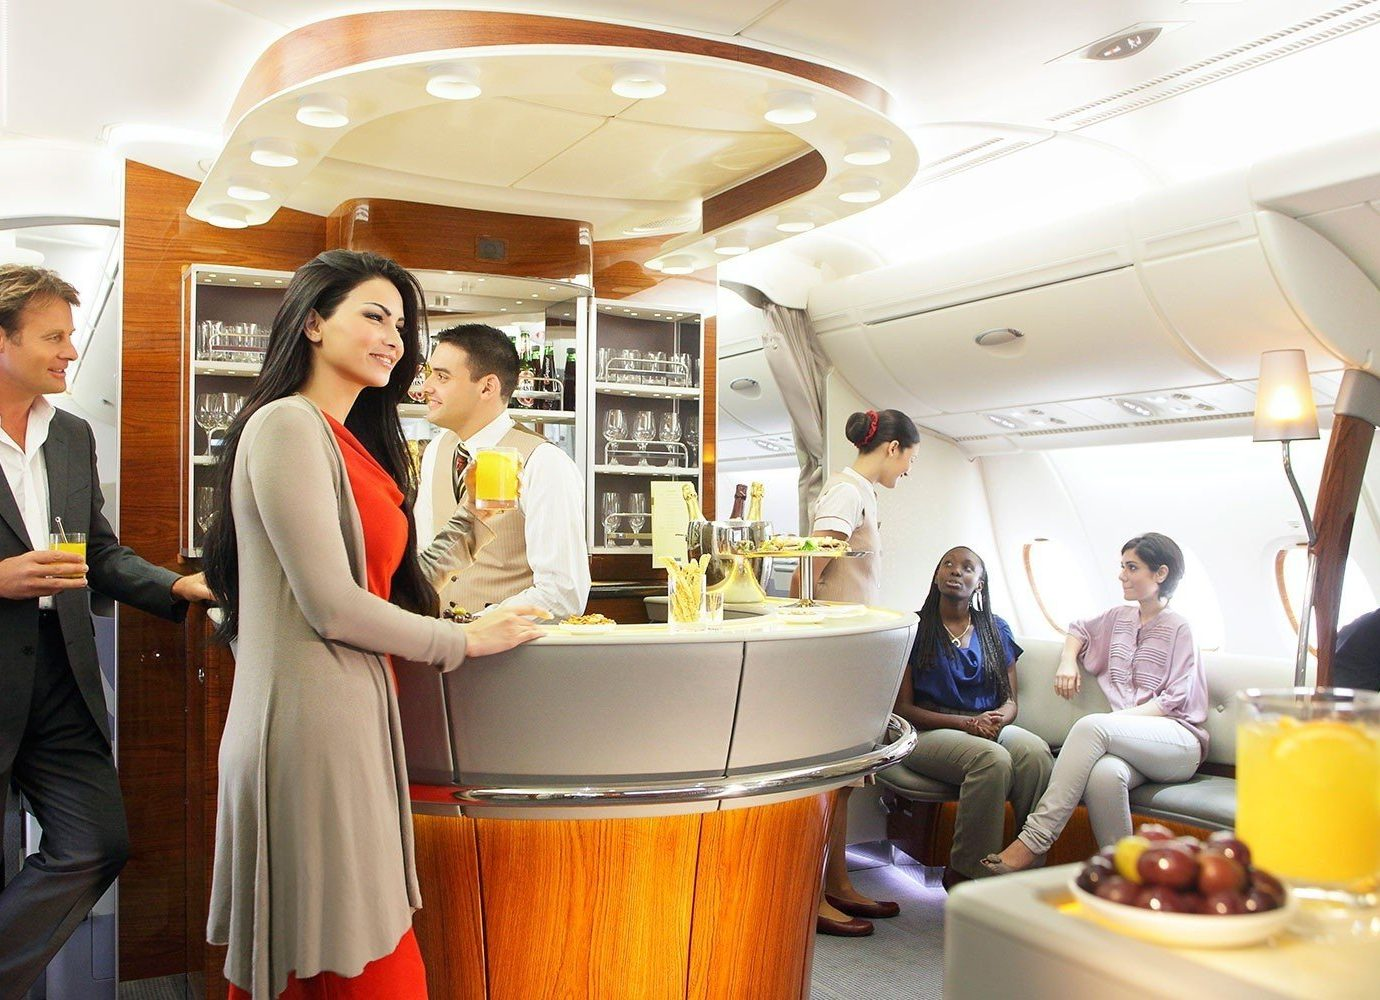 Travel Tips indoor person ceiling meal lunch vehicle restaurant dressed